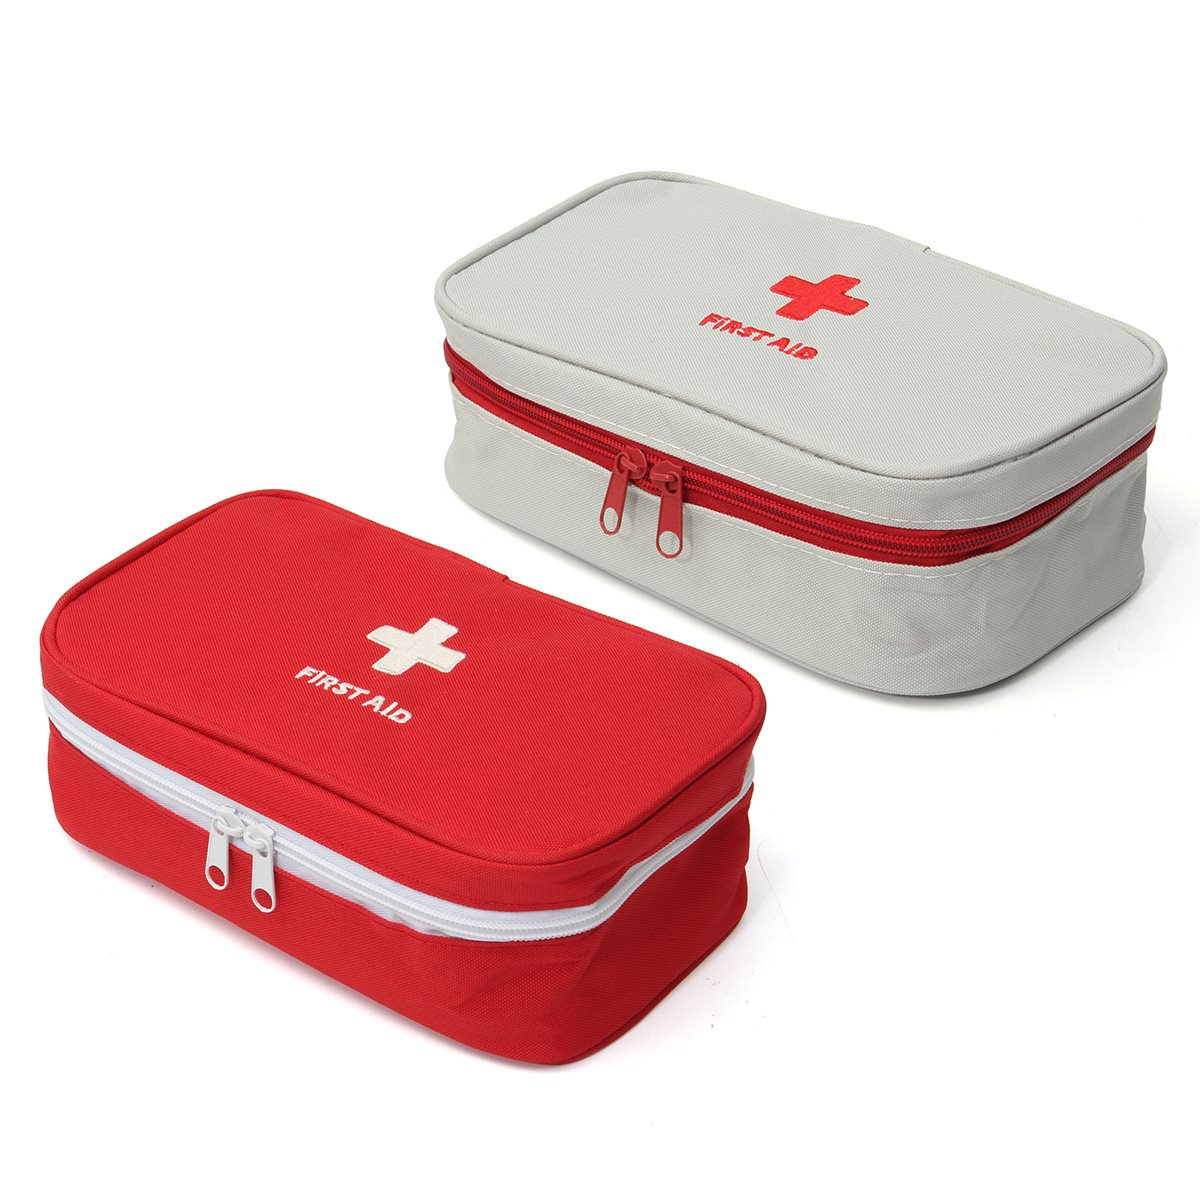 Portable Empty First Aid Bag Kit Pouch Medical Emergency Travel Rescue Case Bag Medical Package for outdoor Safety and Survival